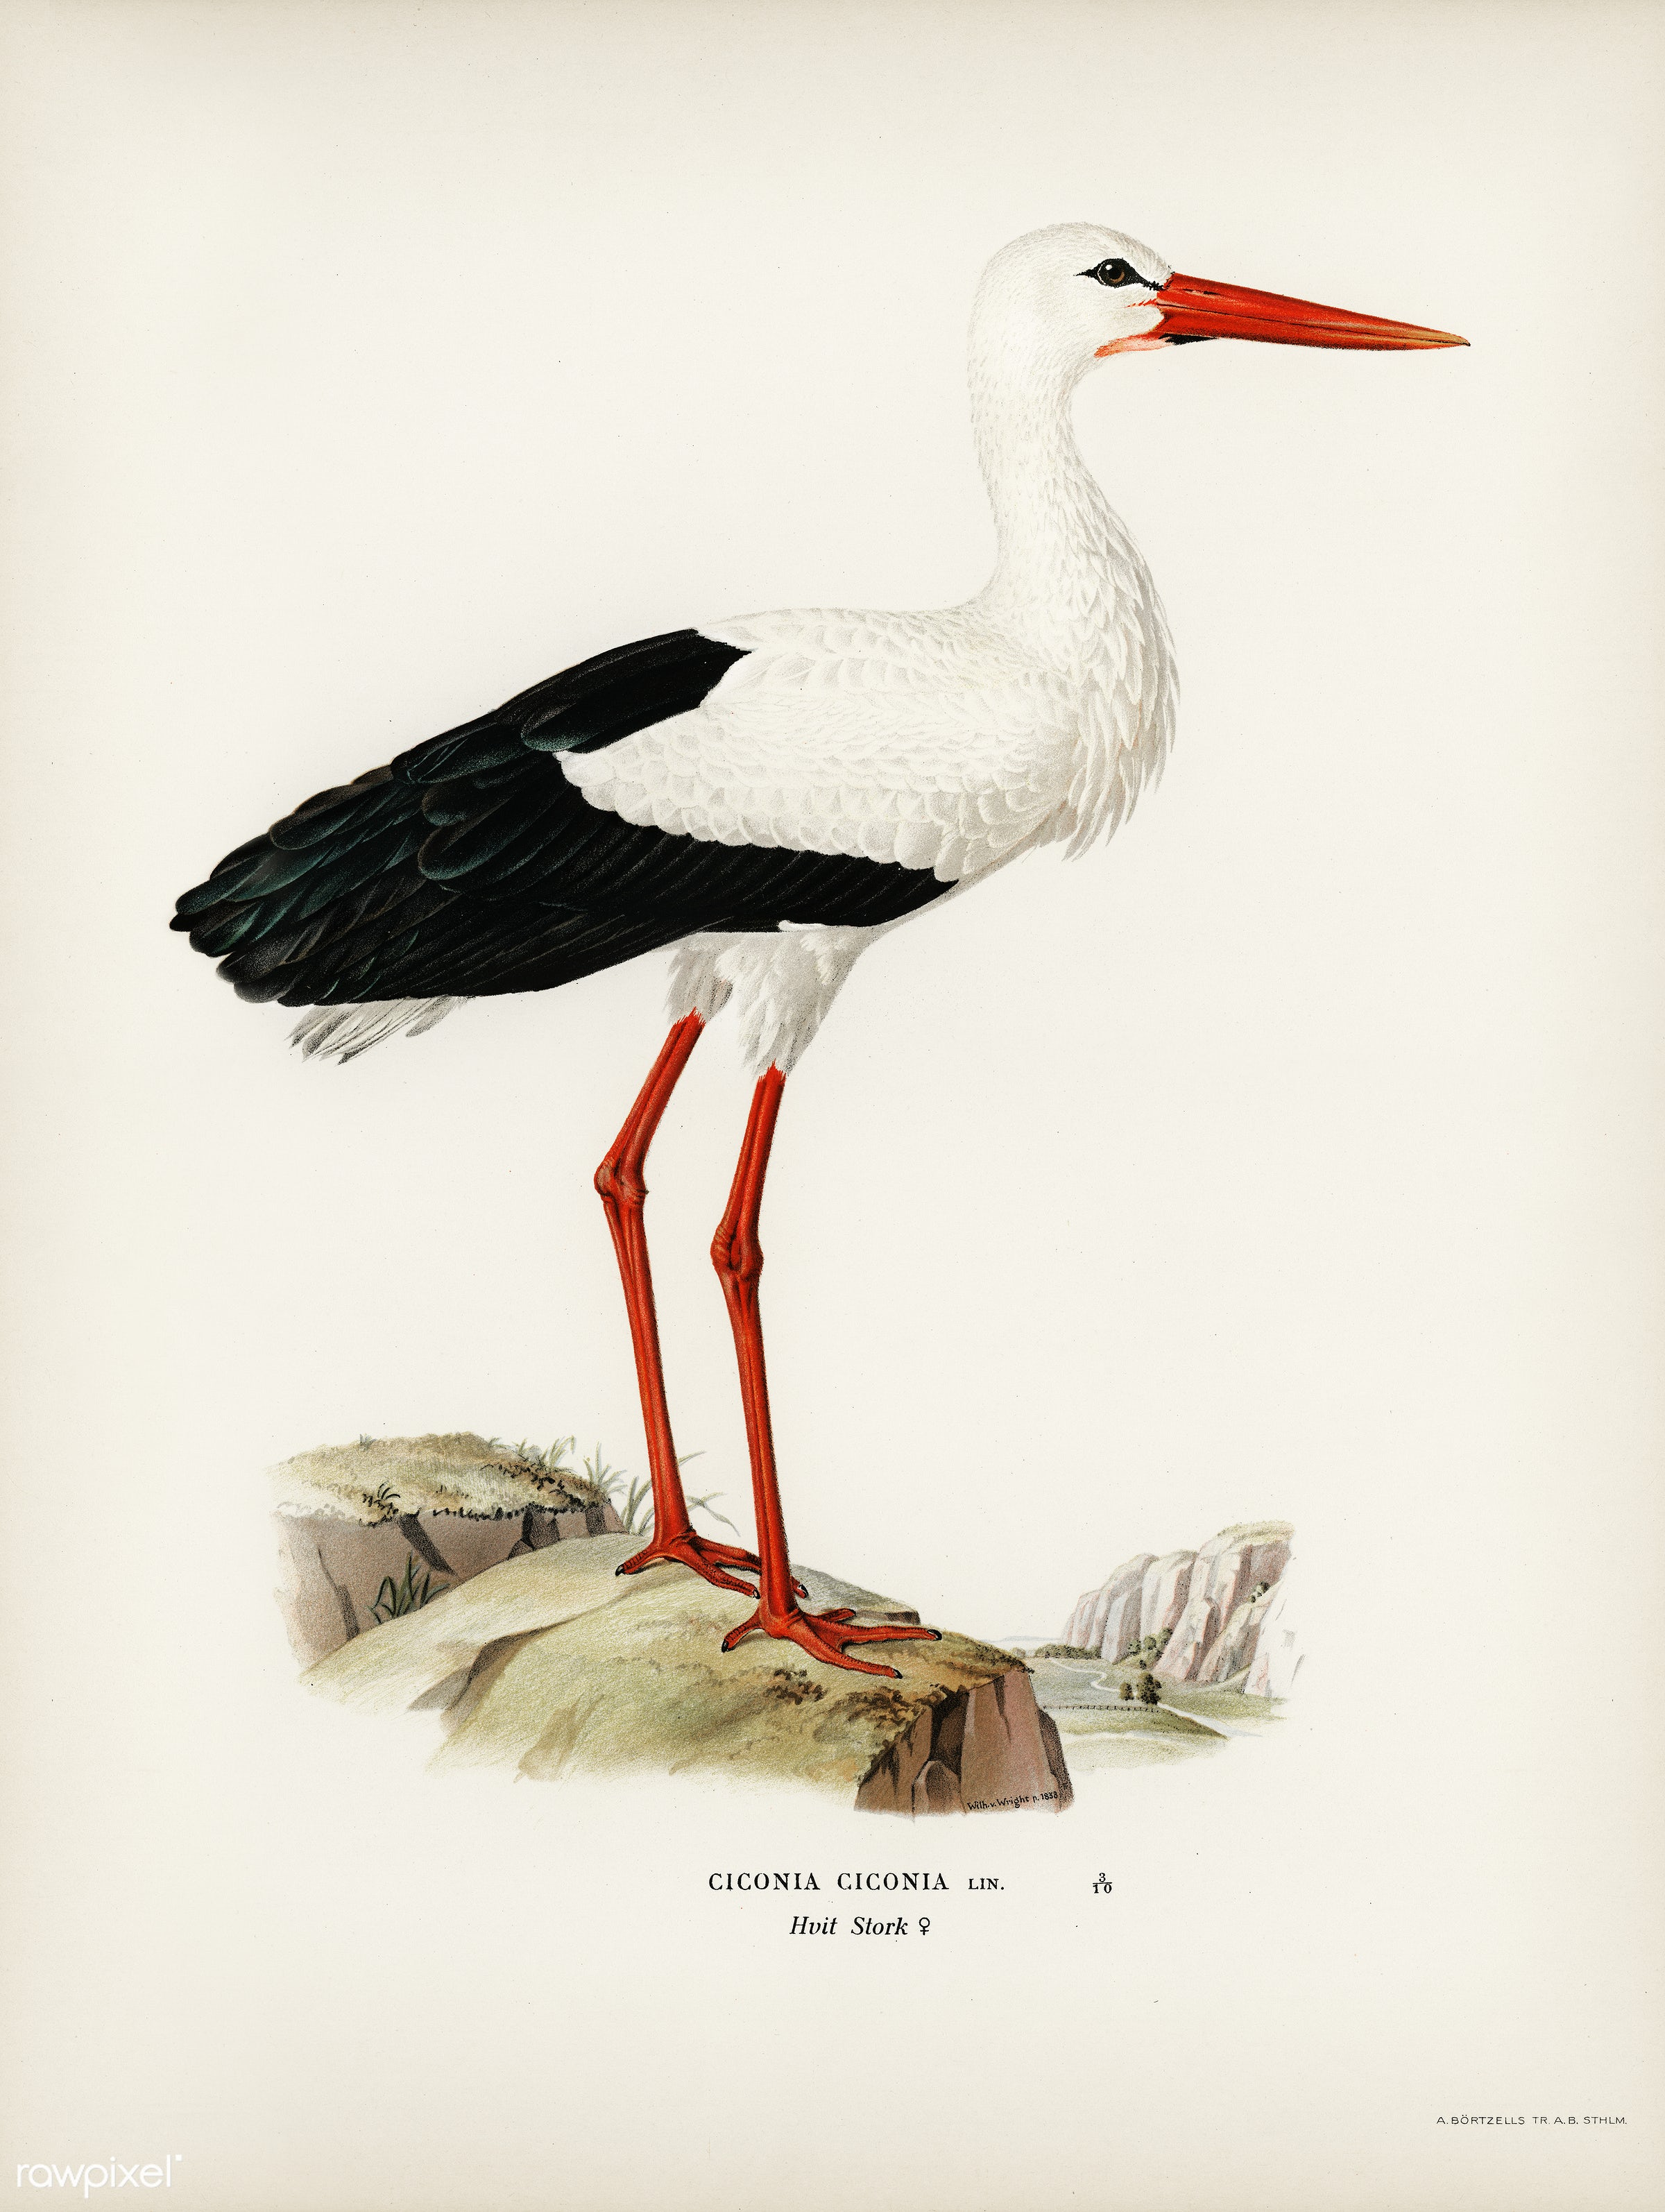 White stork ♀ (Ciconia ciconia) illustrated by the von Wright brothers. Digitally enhanced from our own 1929 folio version...